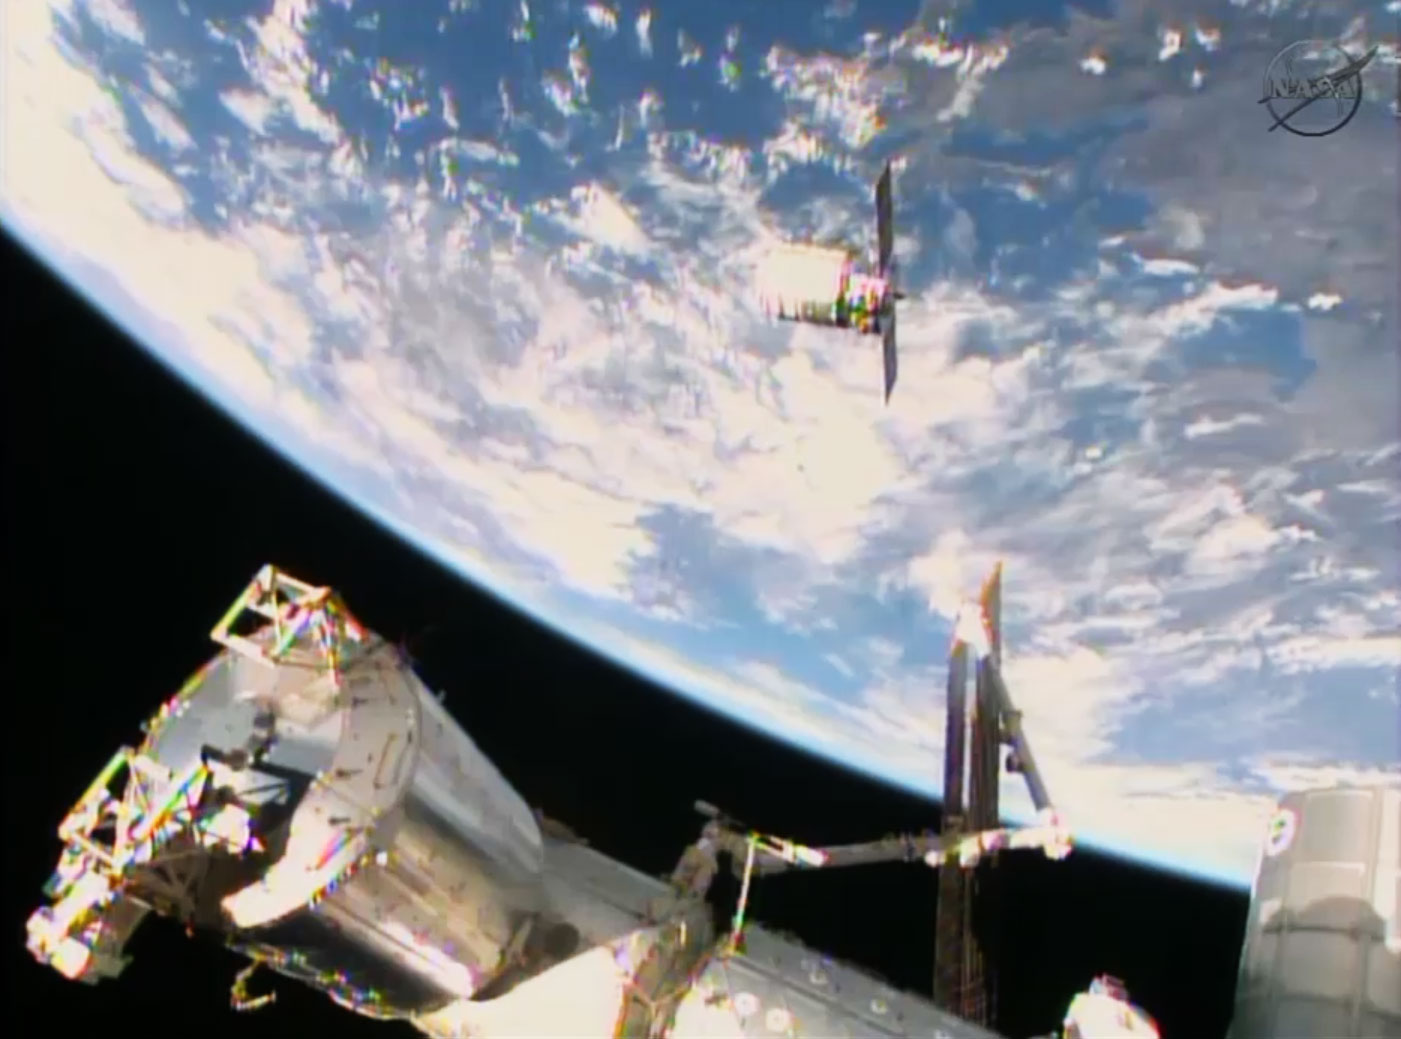 Orbital Sciences' Cygnus commercial cargo ship is on its final approach to the International Space Station before being captured by a robotic arm on Jan. 12, 2014.